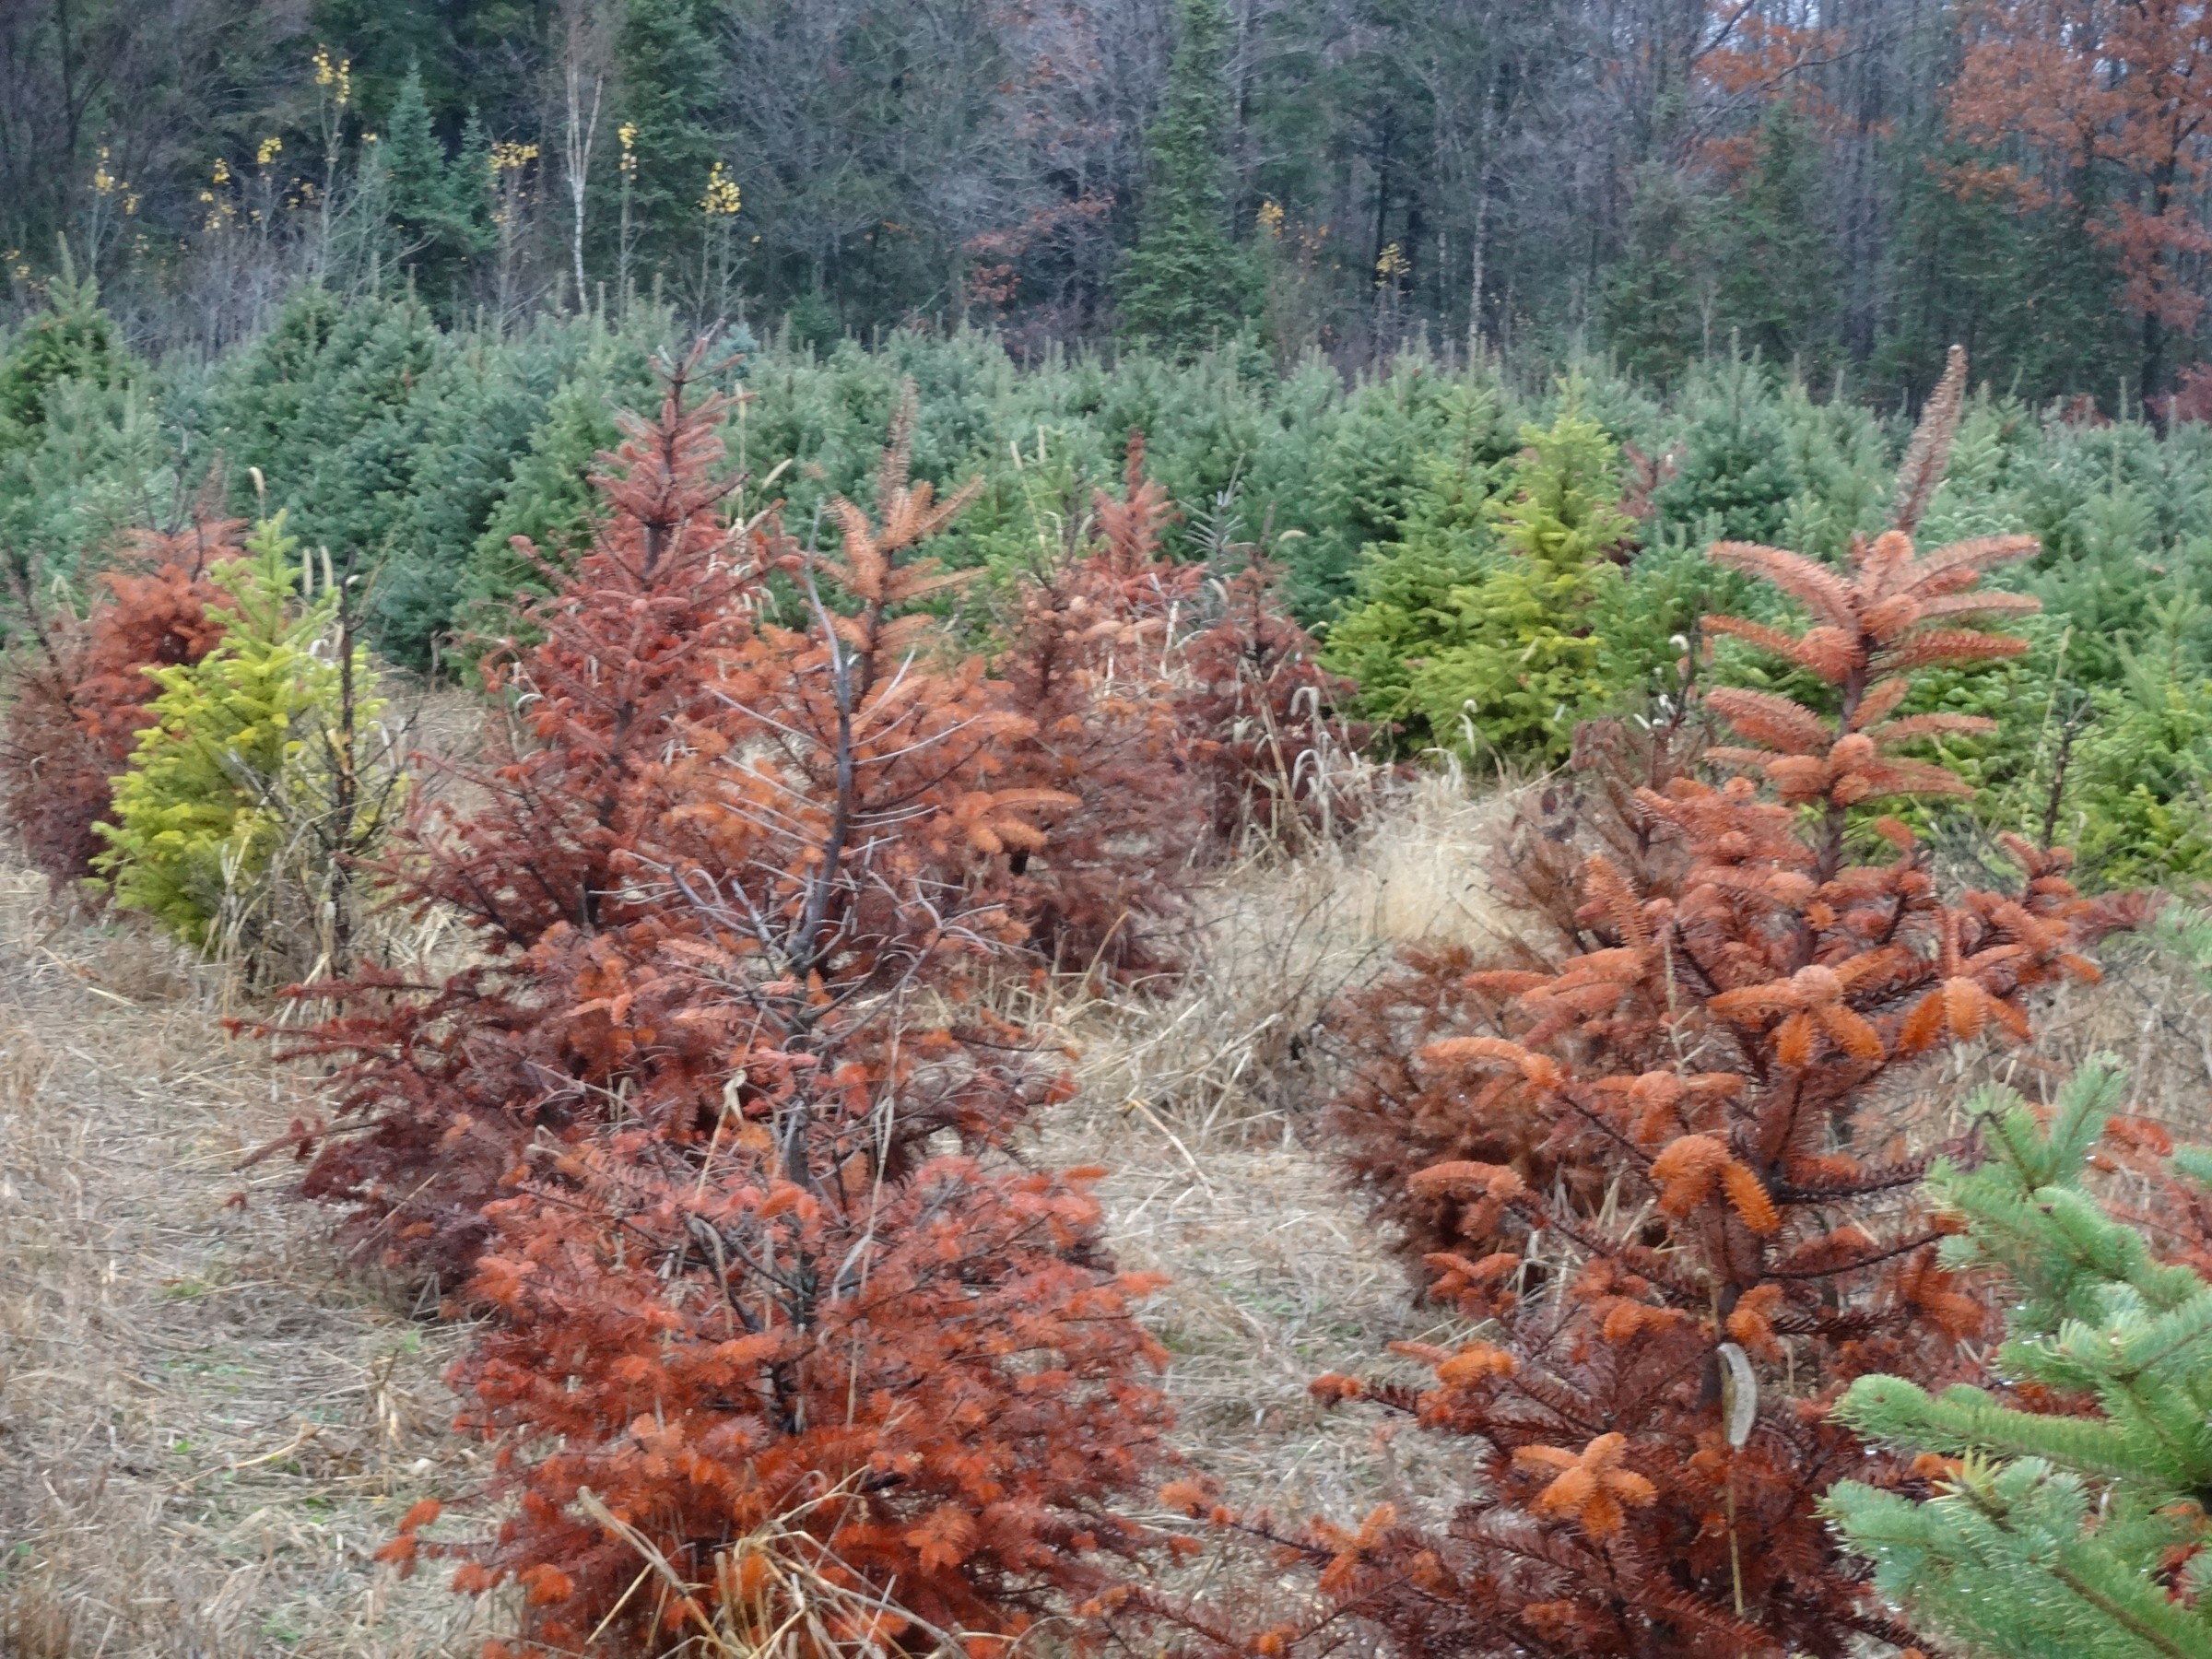 Phytophthora Root Rot Can Cause Severe Losses In Commercial Christmas Tree Production Photo Courtesy